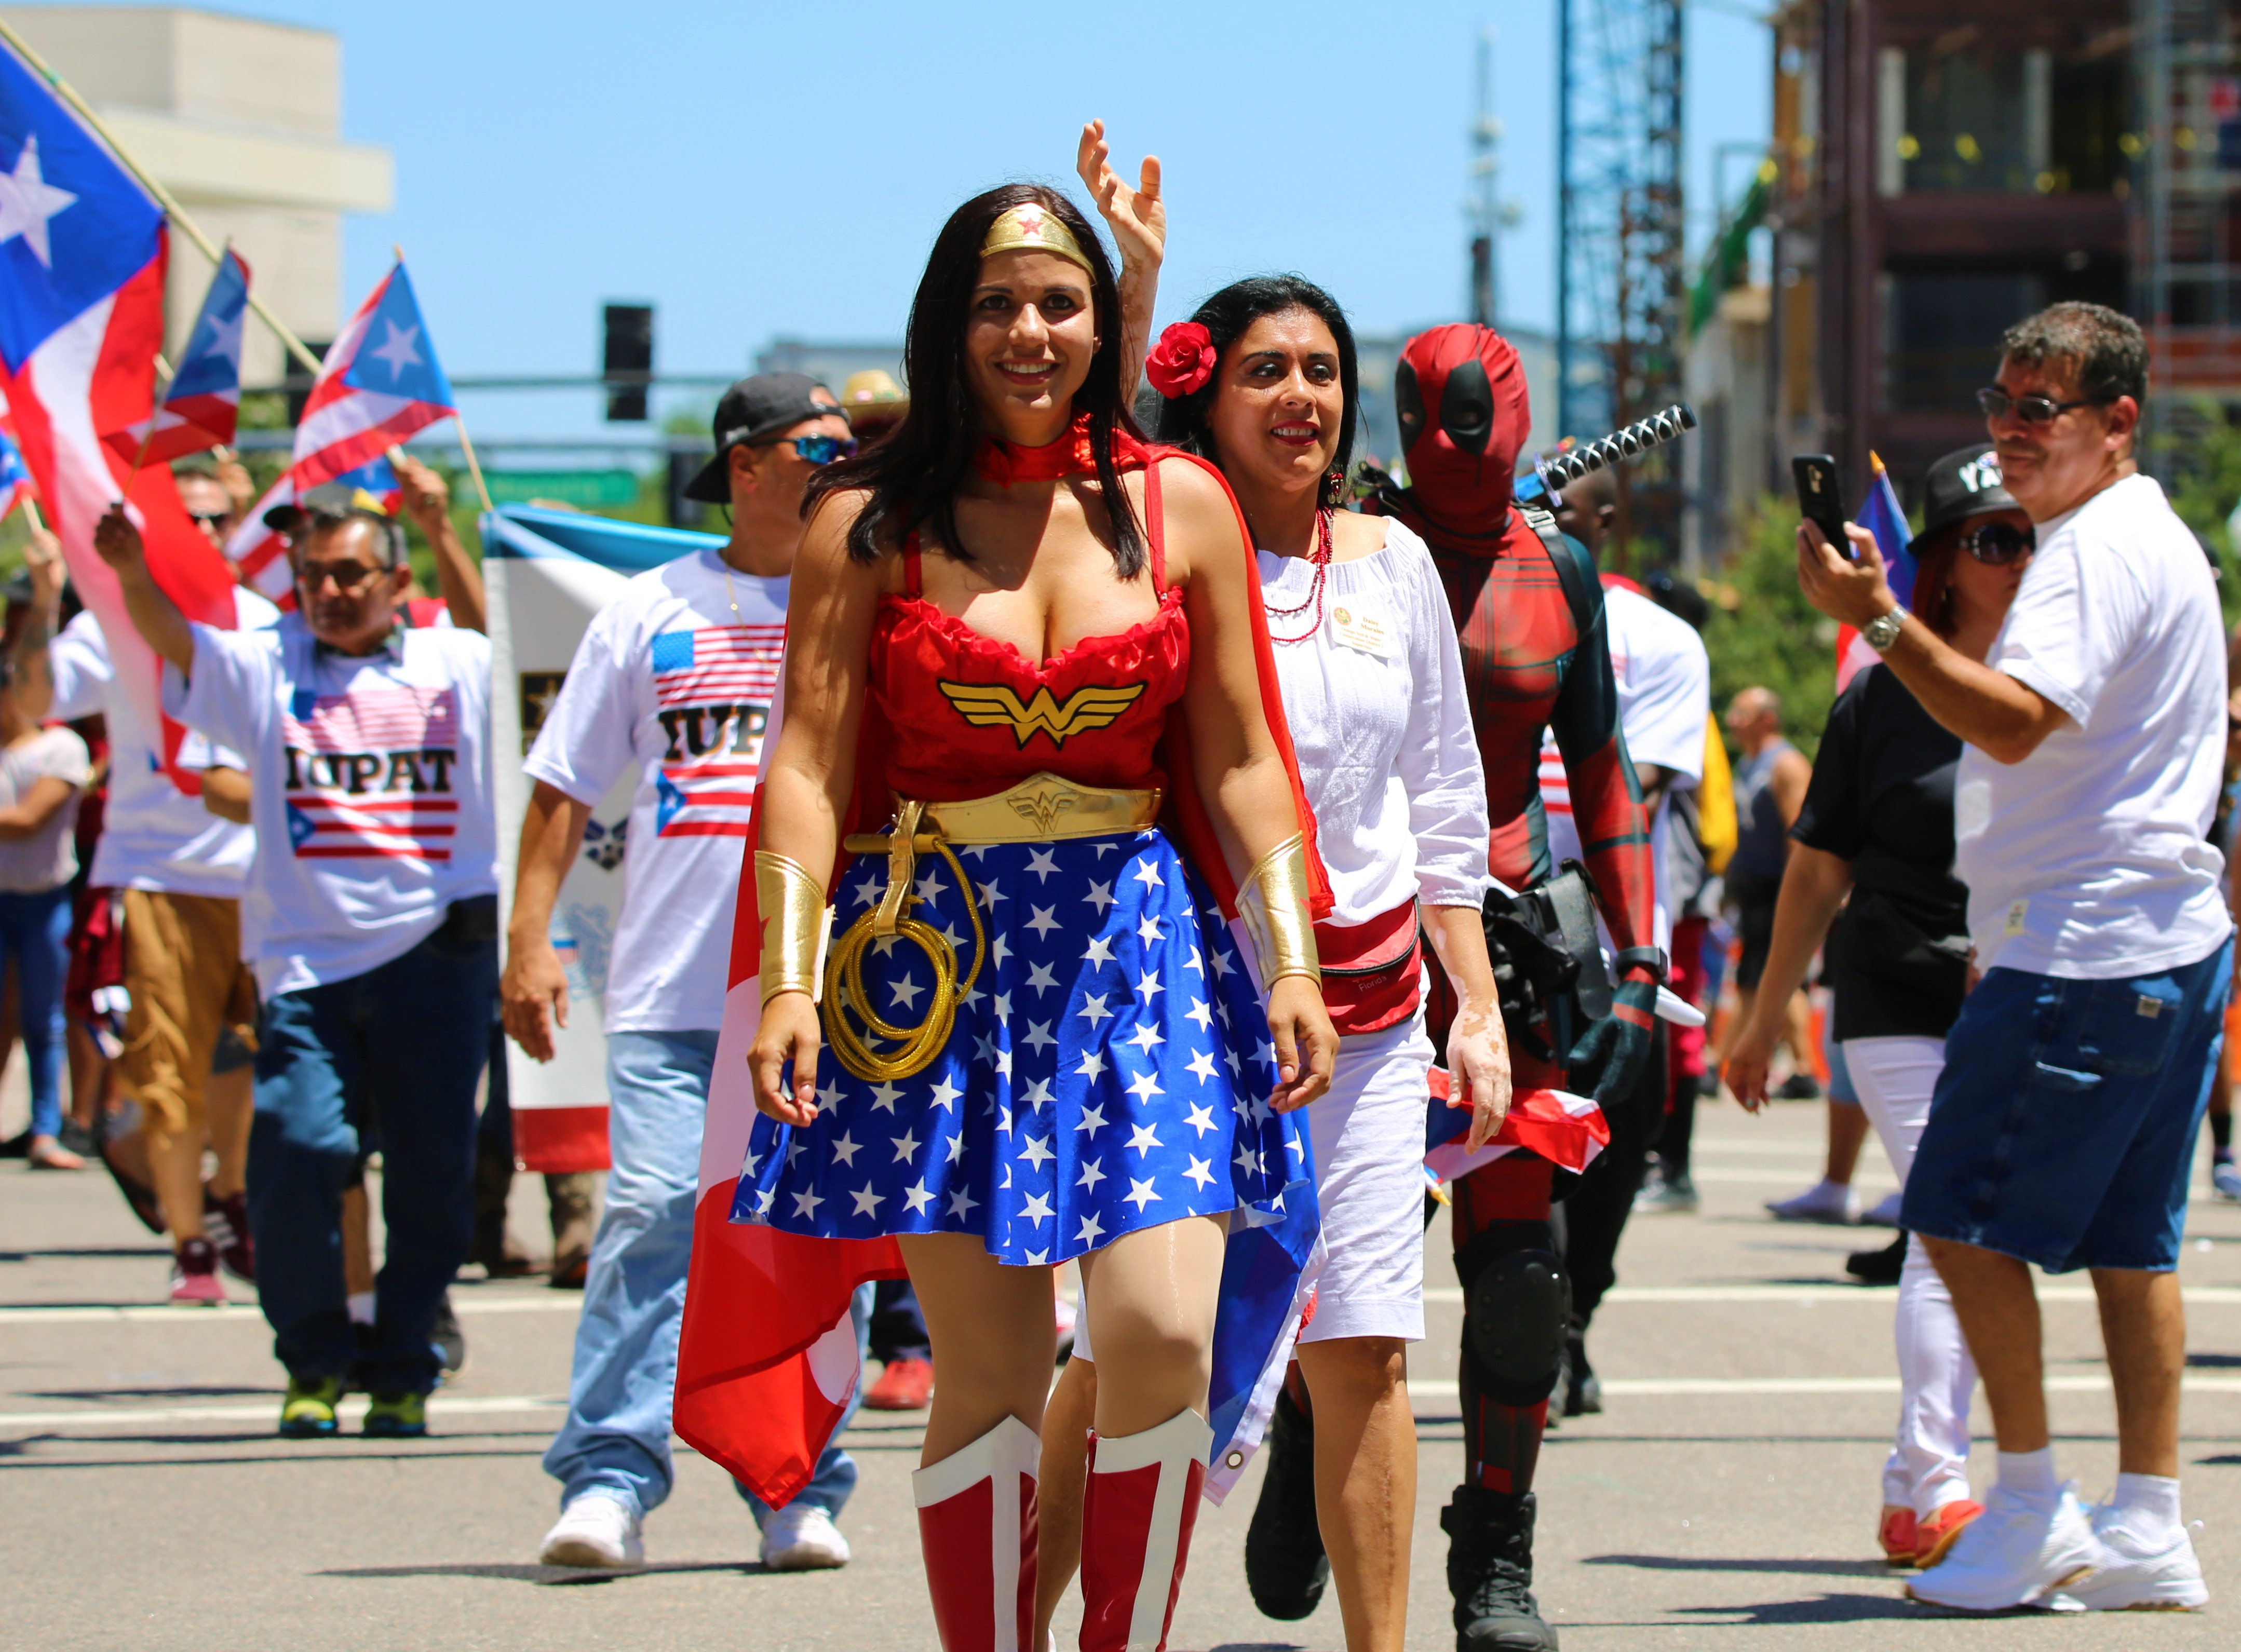 Wonder Woman (foreground) and Deadpool (background) joined Orange Soil & Water Conservation District Supervisor Daisy Morales for the 3rd annual Florida Puerto Rican Parade Saturday. Photo: Willie David/Florida National News.